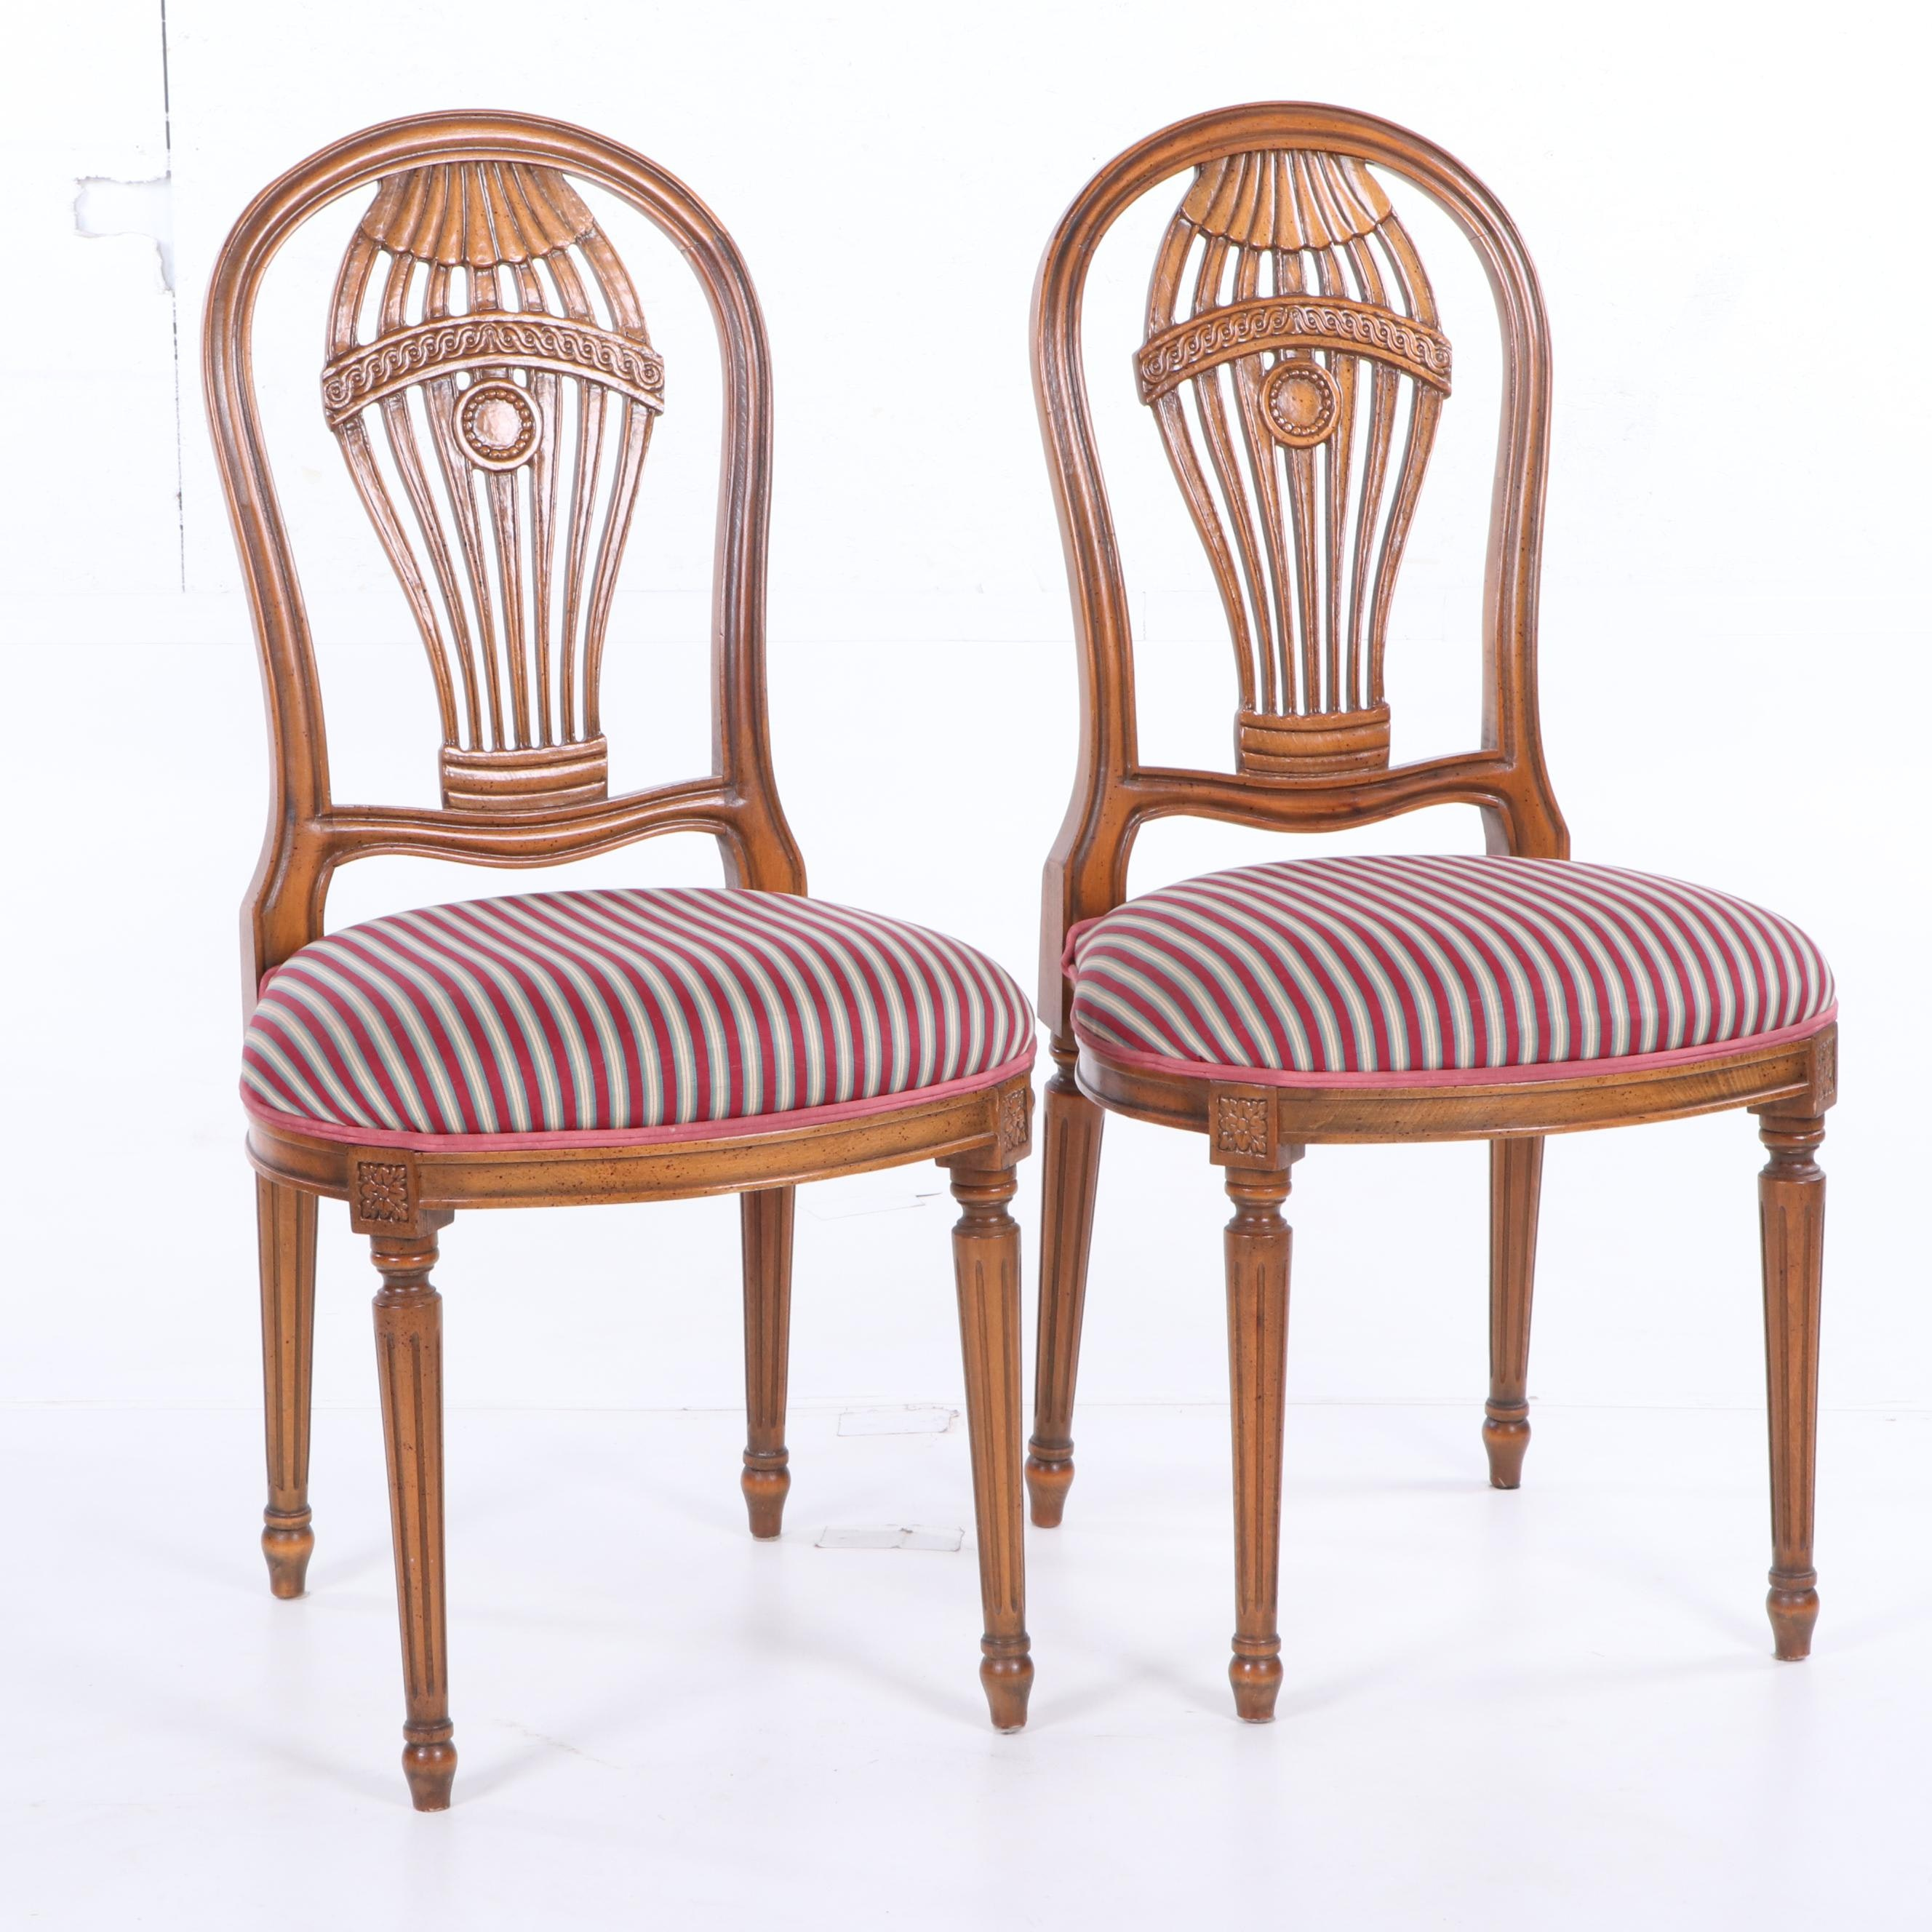 Louis XVI Style Upholstered Balloon Back Side Chairs by Buying & Design, 21st C.